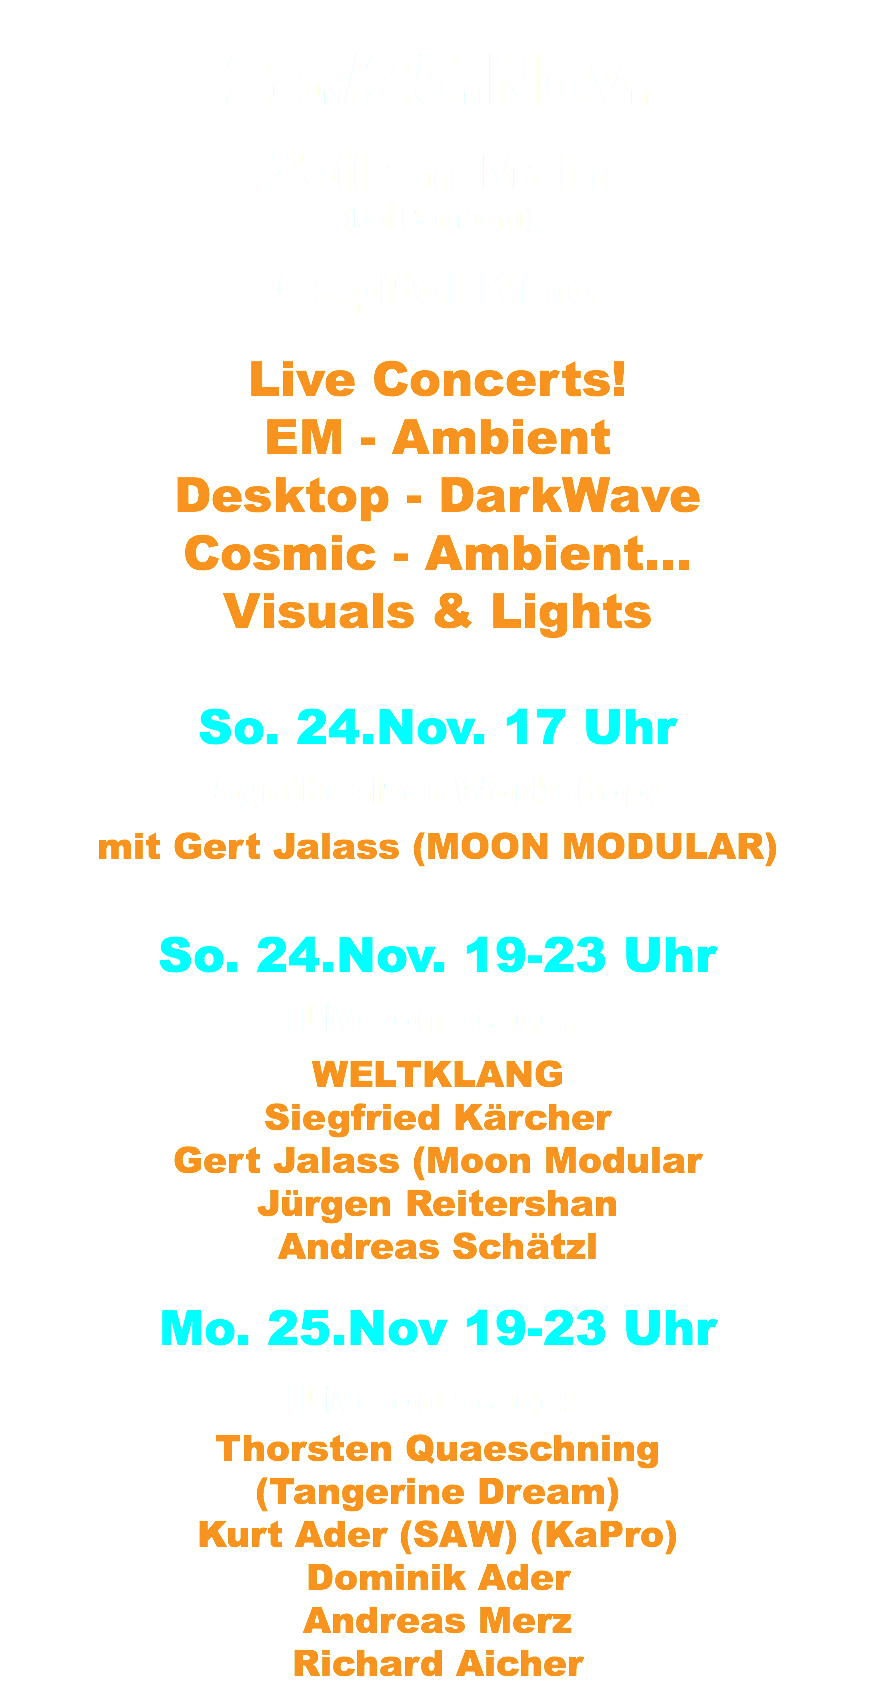 24./25.Nov. Zeil am Main (bei Bamberg) Capitol Kino Live Concerts! EM - Ambient Desktop - DarkWave Cosmic - Ambient... Visuals & Lights So. 24.Nov. 17 Uhr Synthesizer Workshop: mit Gert Jalass (MOON MODULAR) So. 24.Nov. 19-23 Uhr Live on stage: WELTKLANG Siegfried Kärcher Gert Jalass (Moon Modular Jürgen Reitershan Andreas Schätzl Mo. 25.Nov 19-23 Uhr Live on stage: Thorsten Quaeschning (Tangerine Dream) Kurt Ader (SAW) (KaPro) Dominik Ader Andreas Merz Richard Aicher